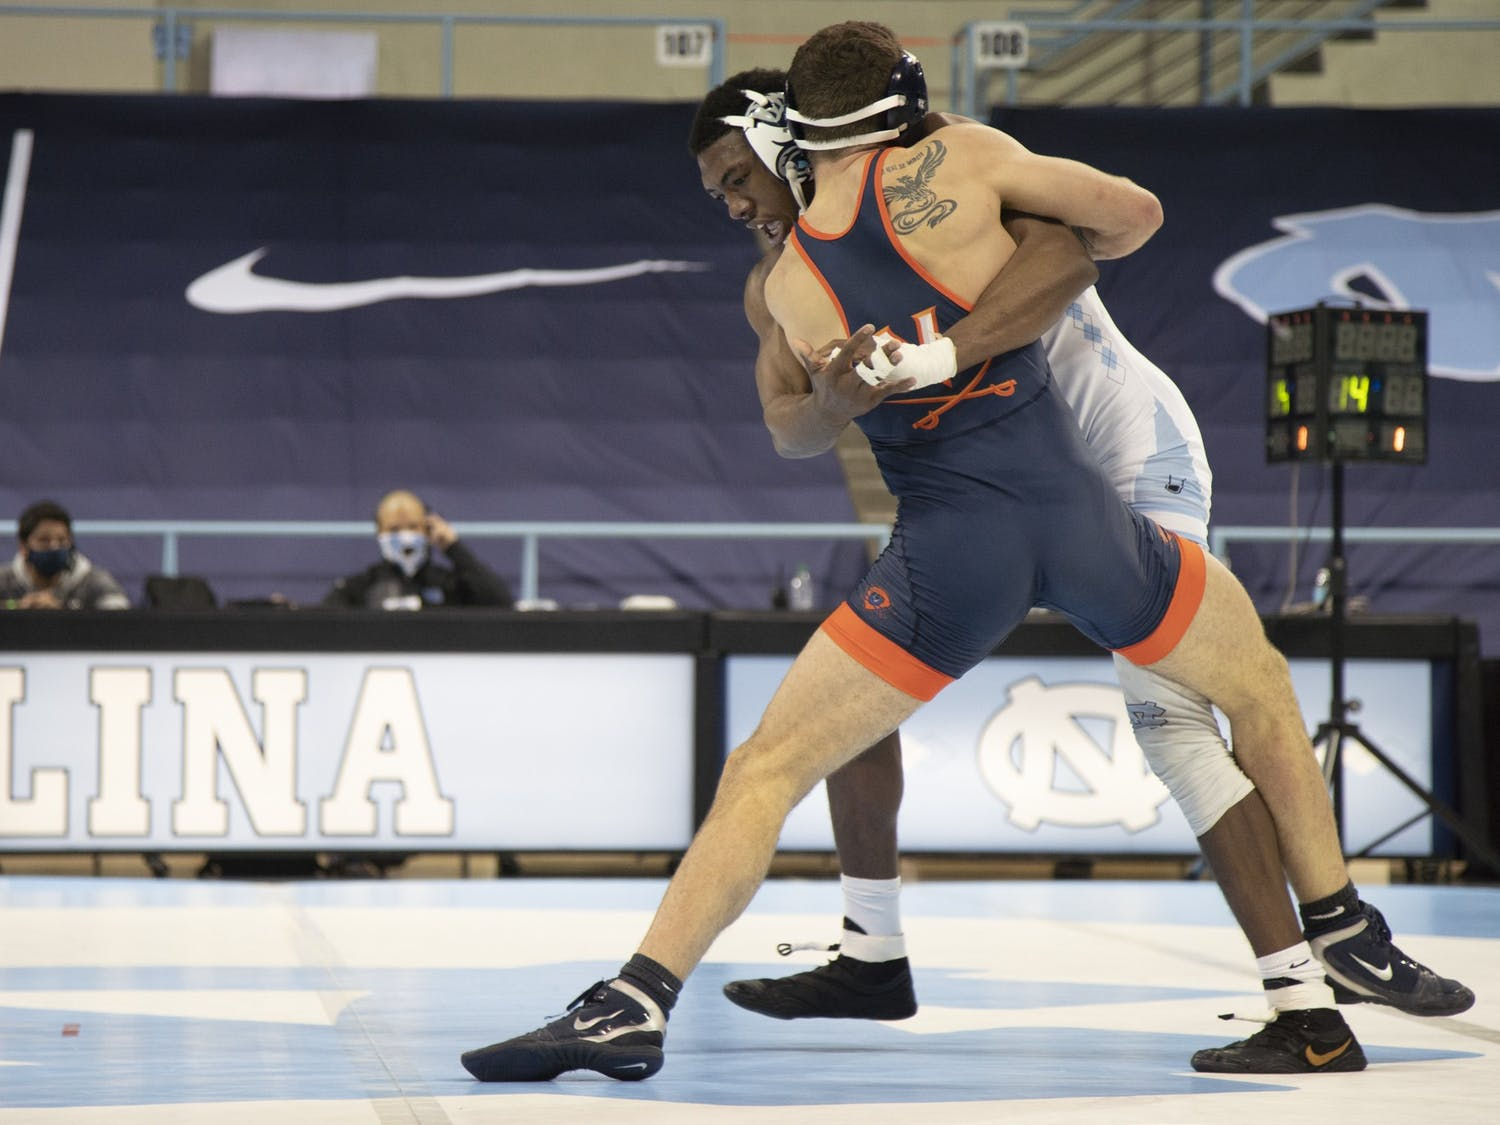 Senior Kennedy Monday wrestles against UVA's Jake Keating in the 165 lbs weight division on senior night in Carmichael Arena on Feb. 13, 2021. Monday lost his match against Keating, however UNC won the match overall, 25-9.